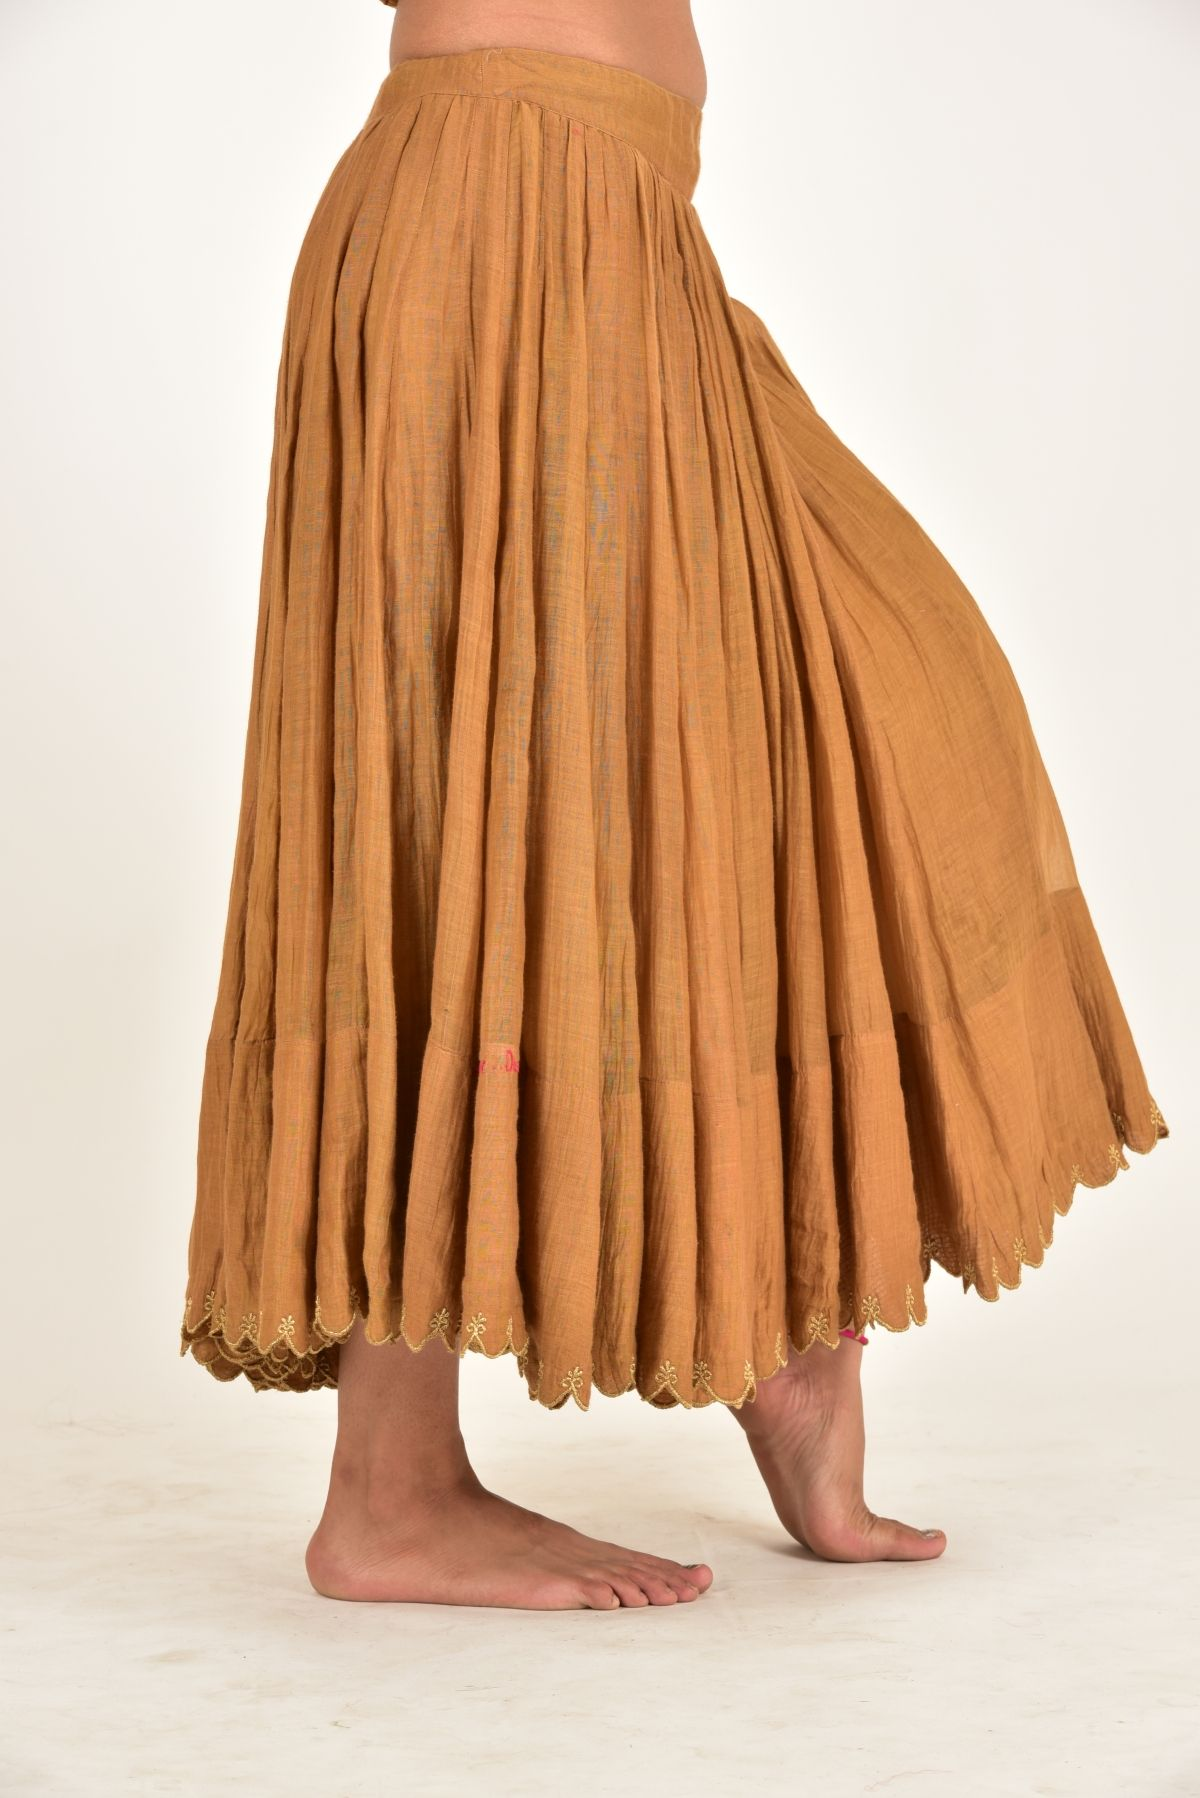 MAITRI BROWN CHANDERI GATHERED SKIRT